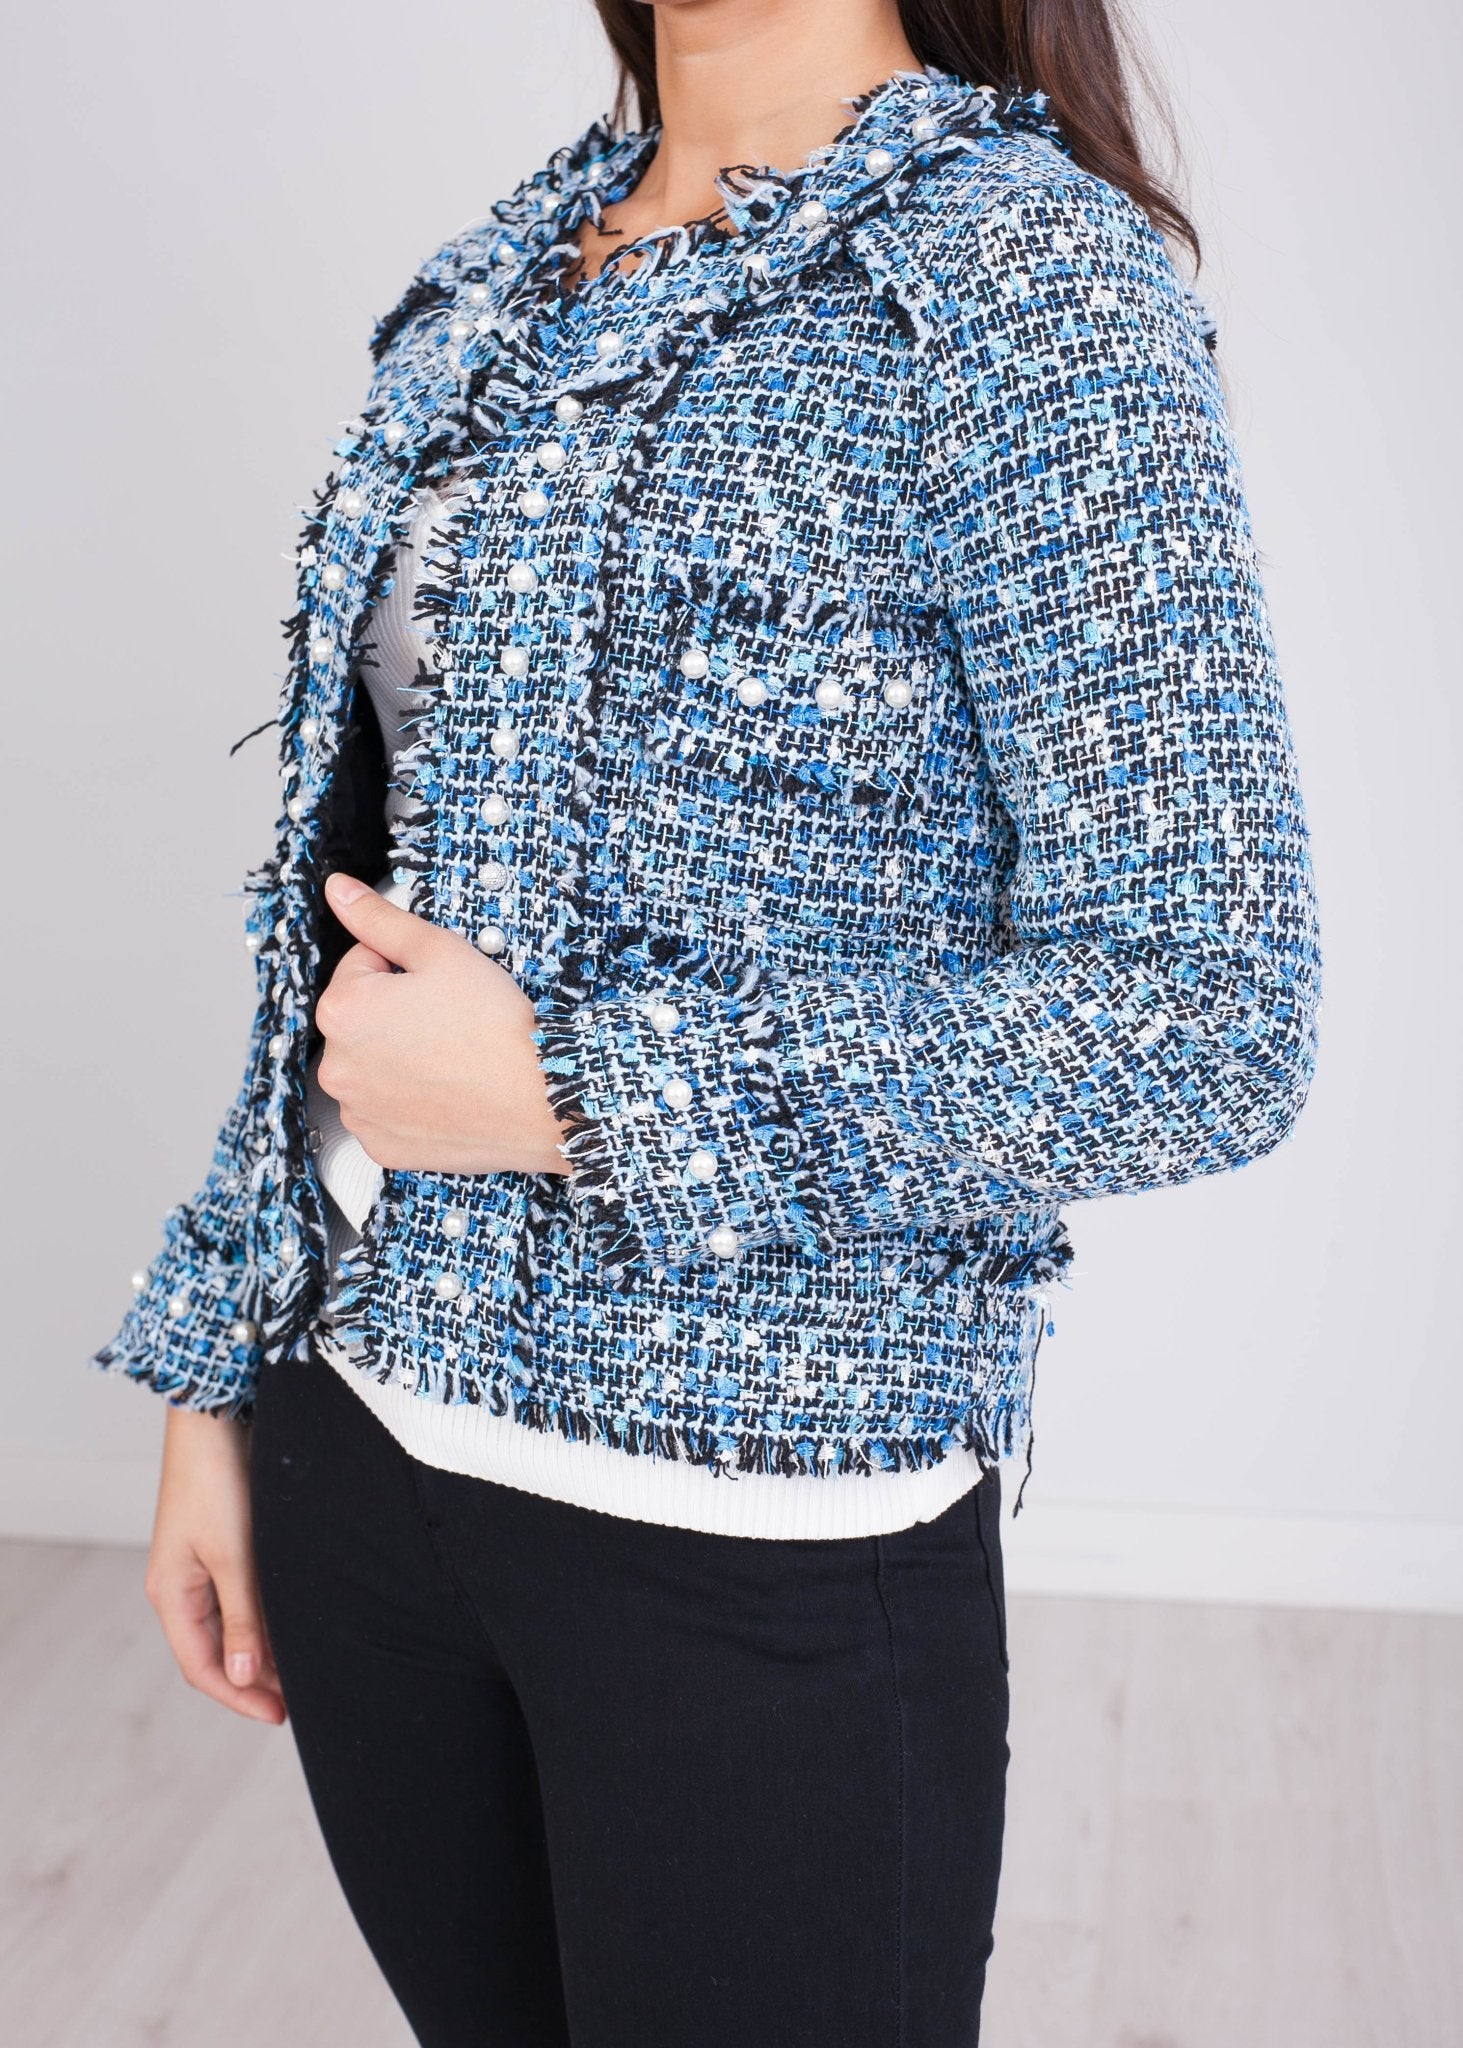 Emilia Black and Blue Tweed Jacket - The Walk in Wardrobe